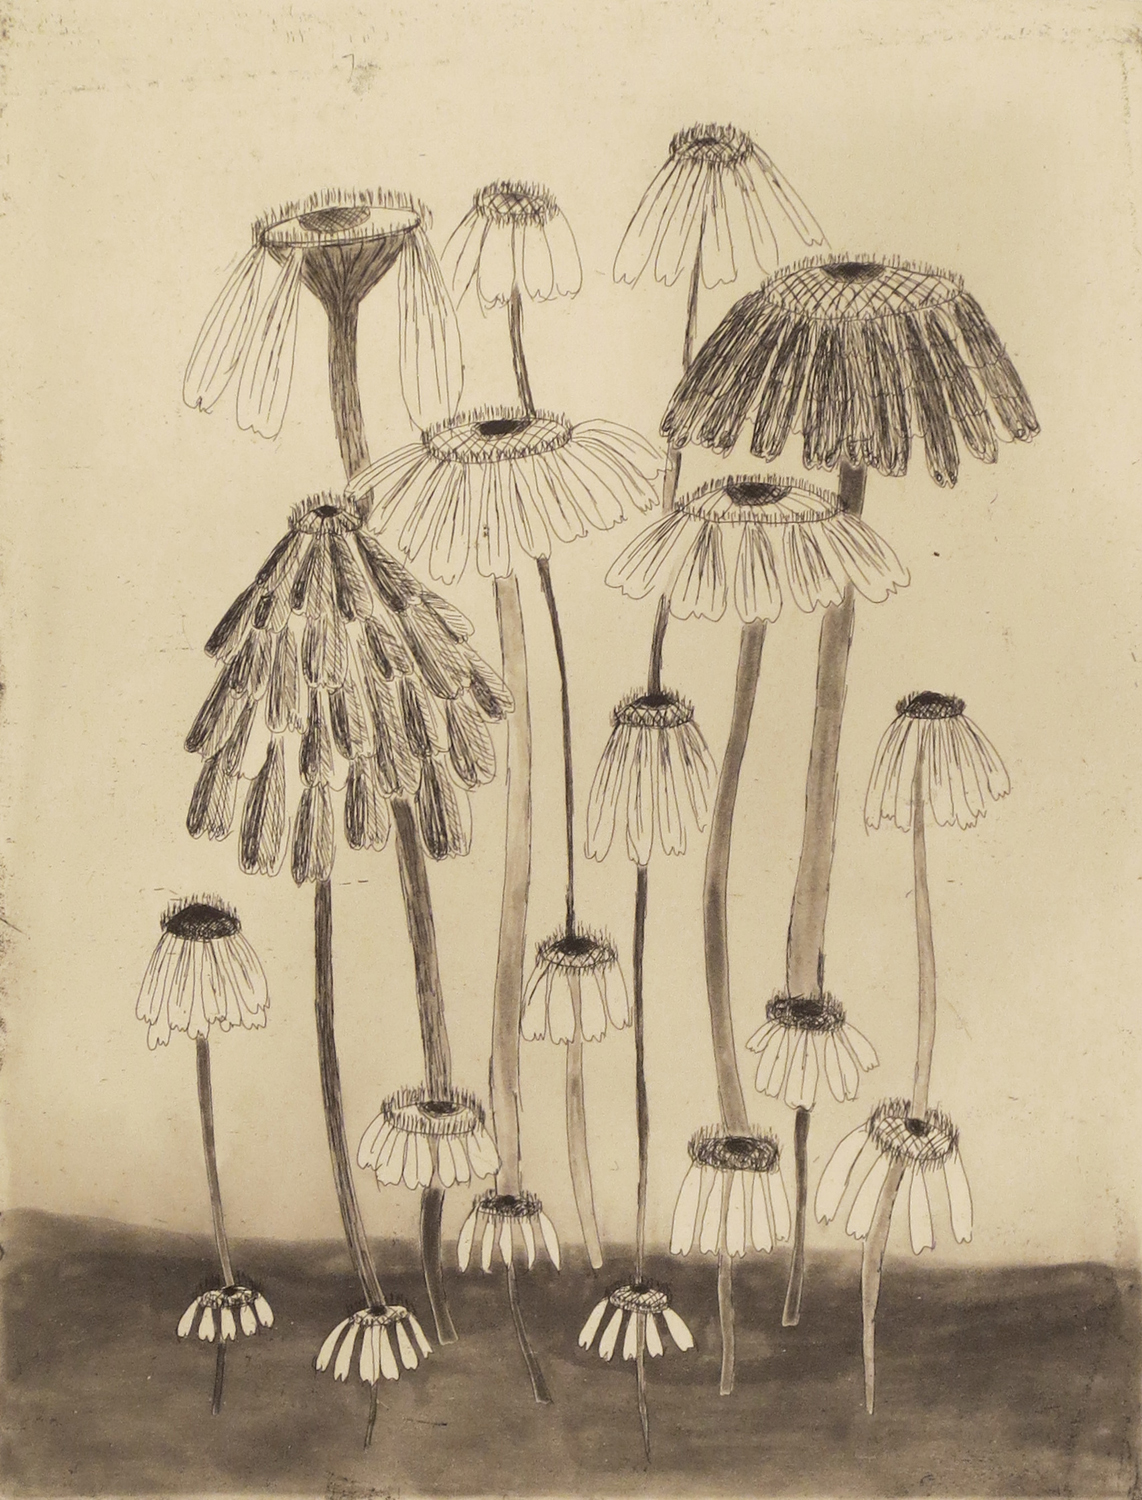 Kiki Smith   Variety Flowers II , 2014 Etching, aquatint and drypoint Image size: 11 3/4 x 9 inches Sheet size: 19 1/2 x 15 inches Edition of 13 Set of four